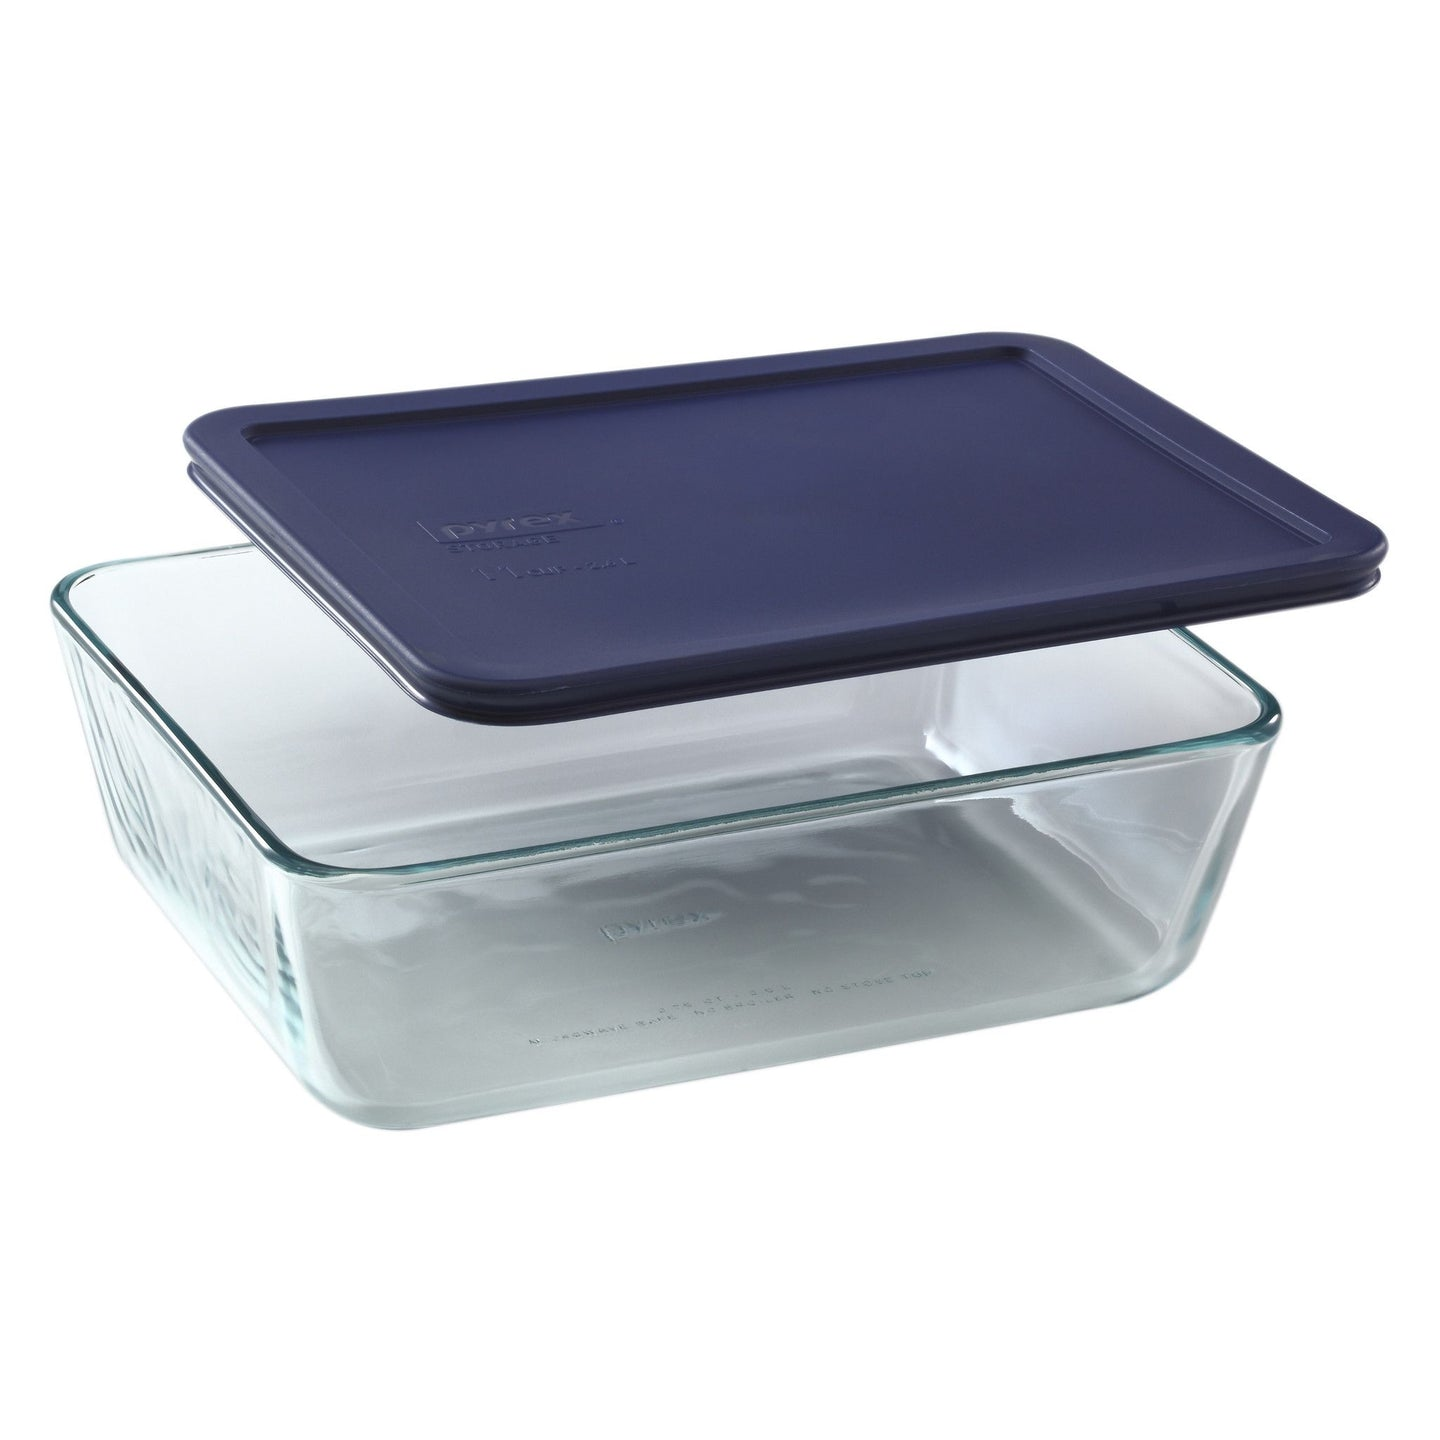 Pyrex Glass Storage with Lid 11 Cup, 1.0 CT